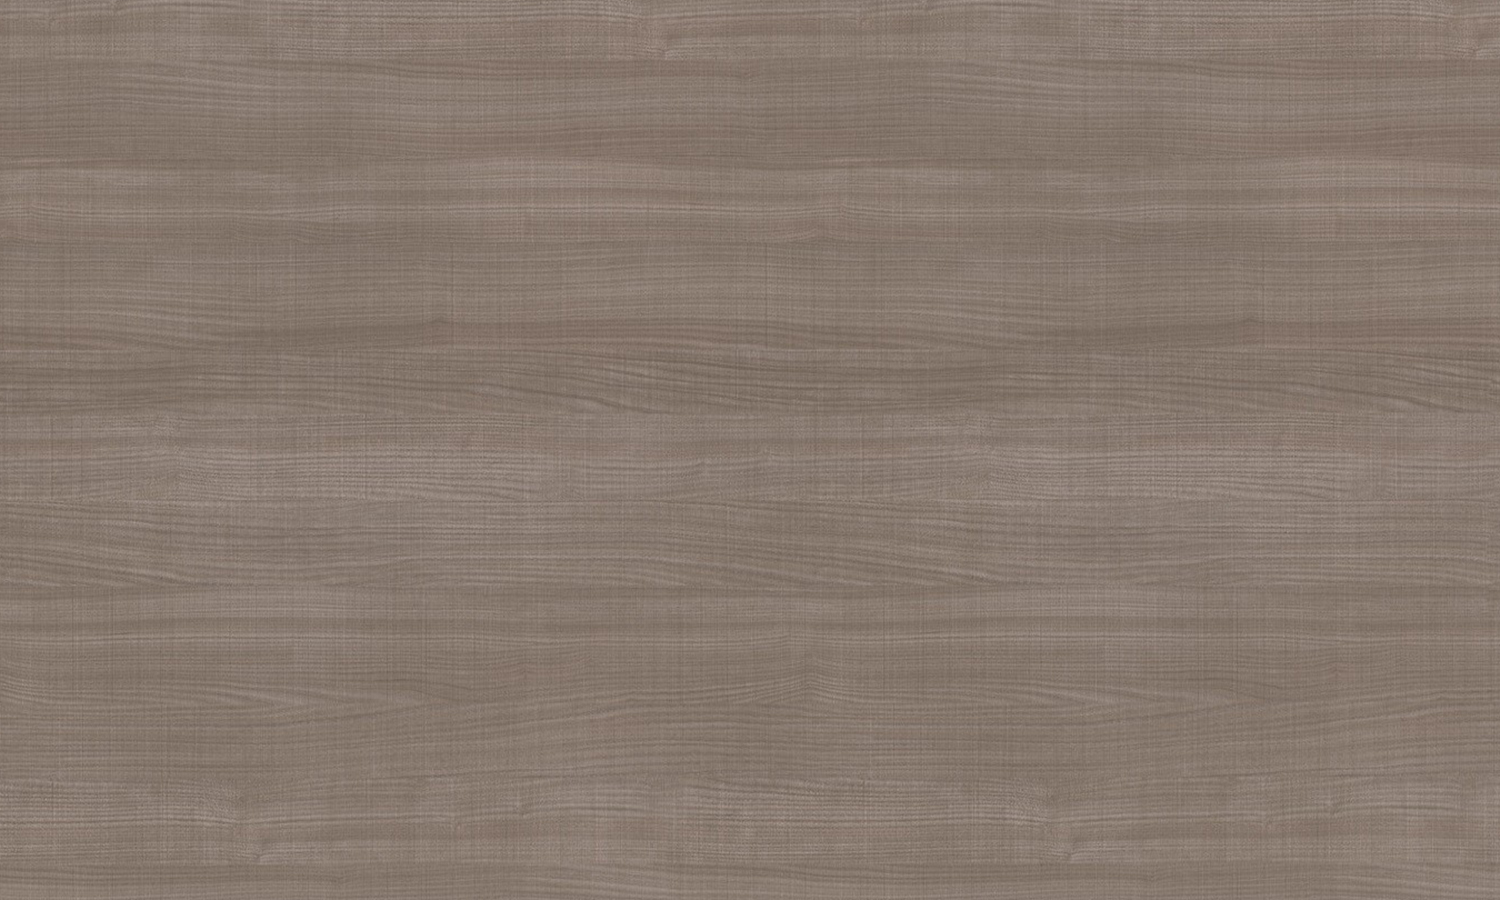 Aeon Worktop 5th Avenue Elm 3600 x 665 x 38mm